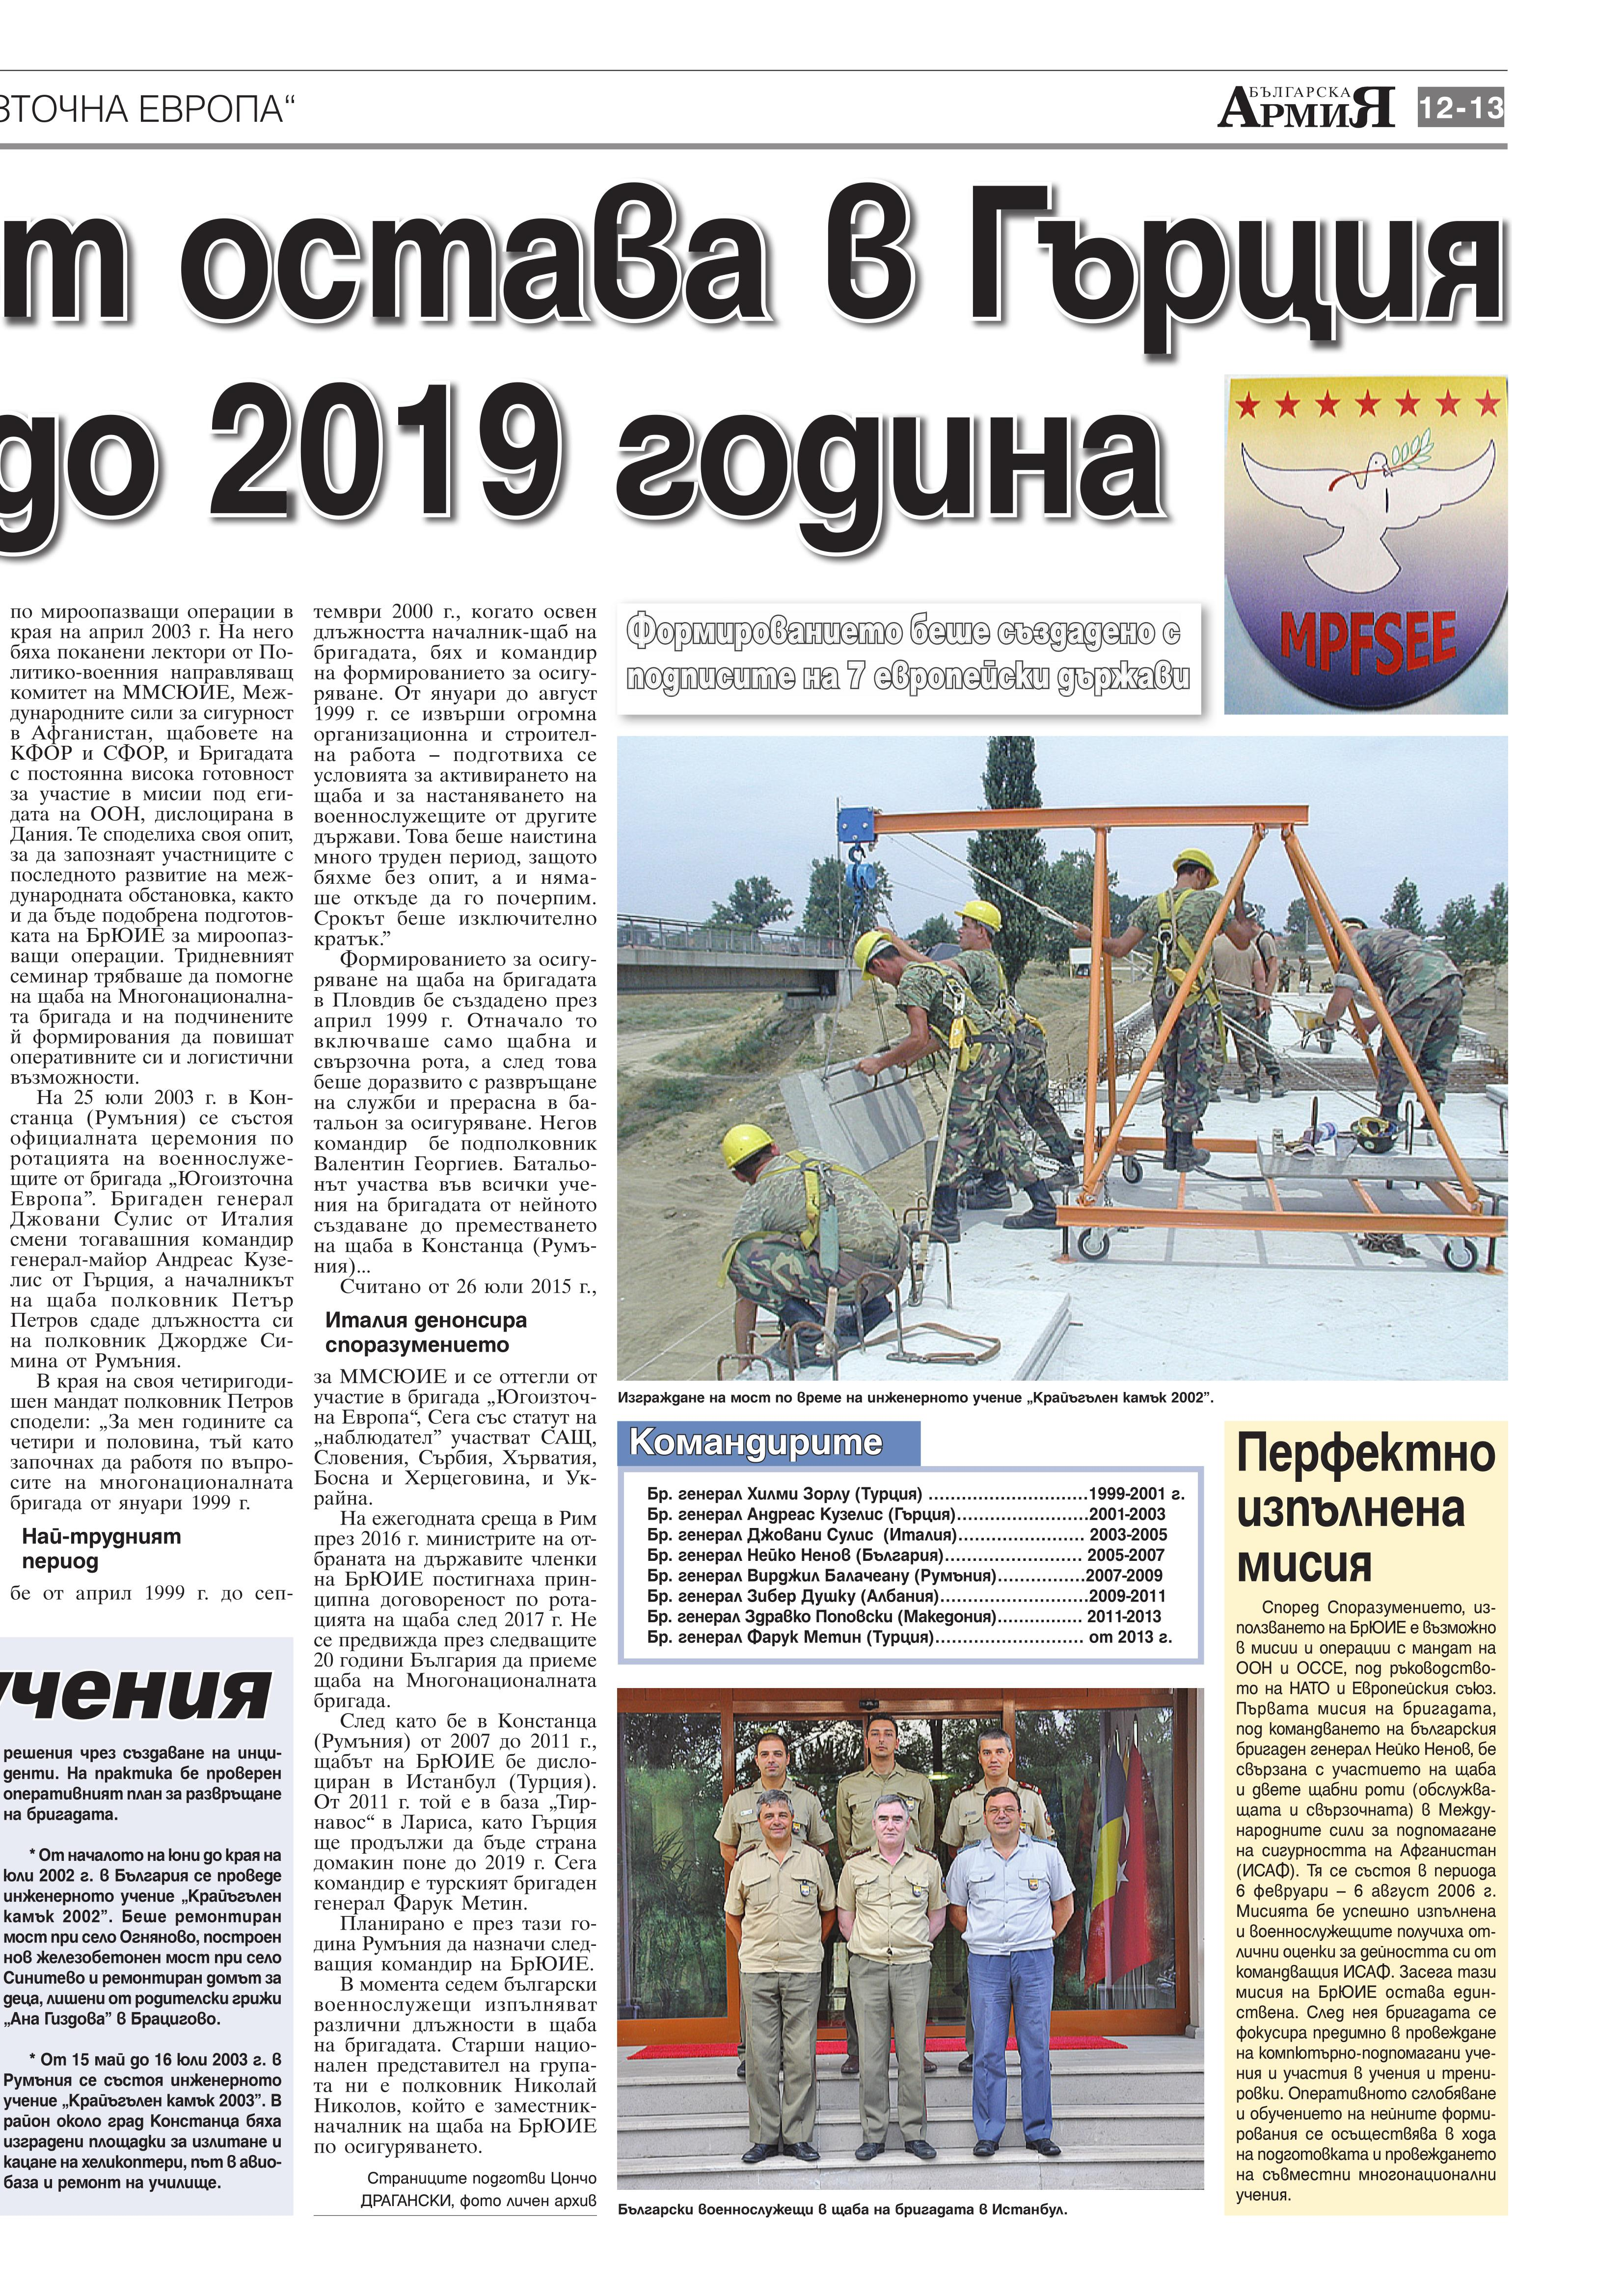 https://www.armymedia.bg/wp-content/uploads/2015/06/13.page1_-19.jpg